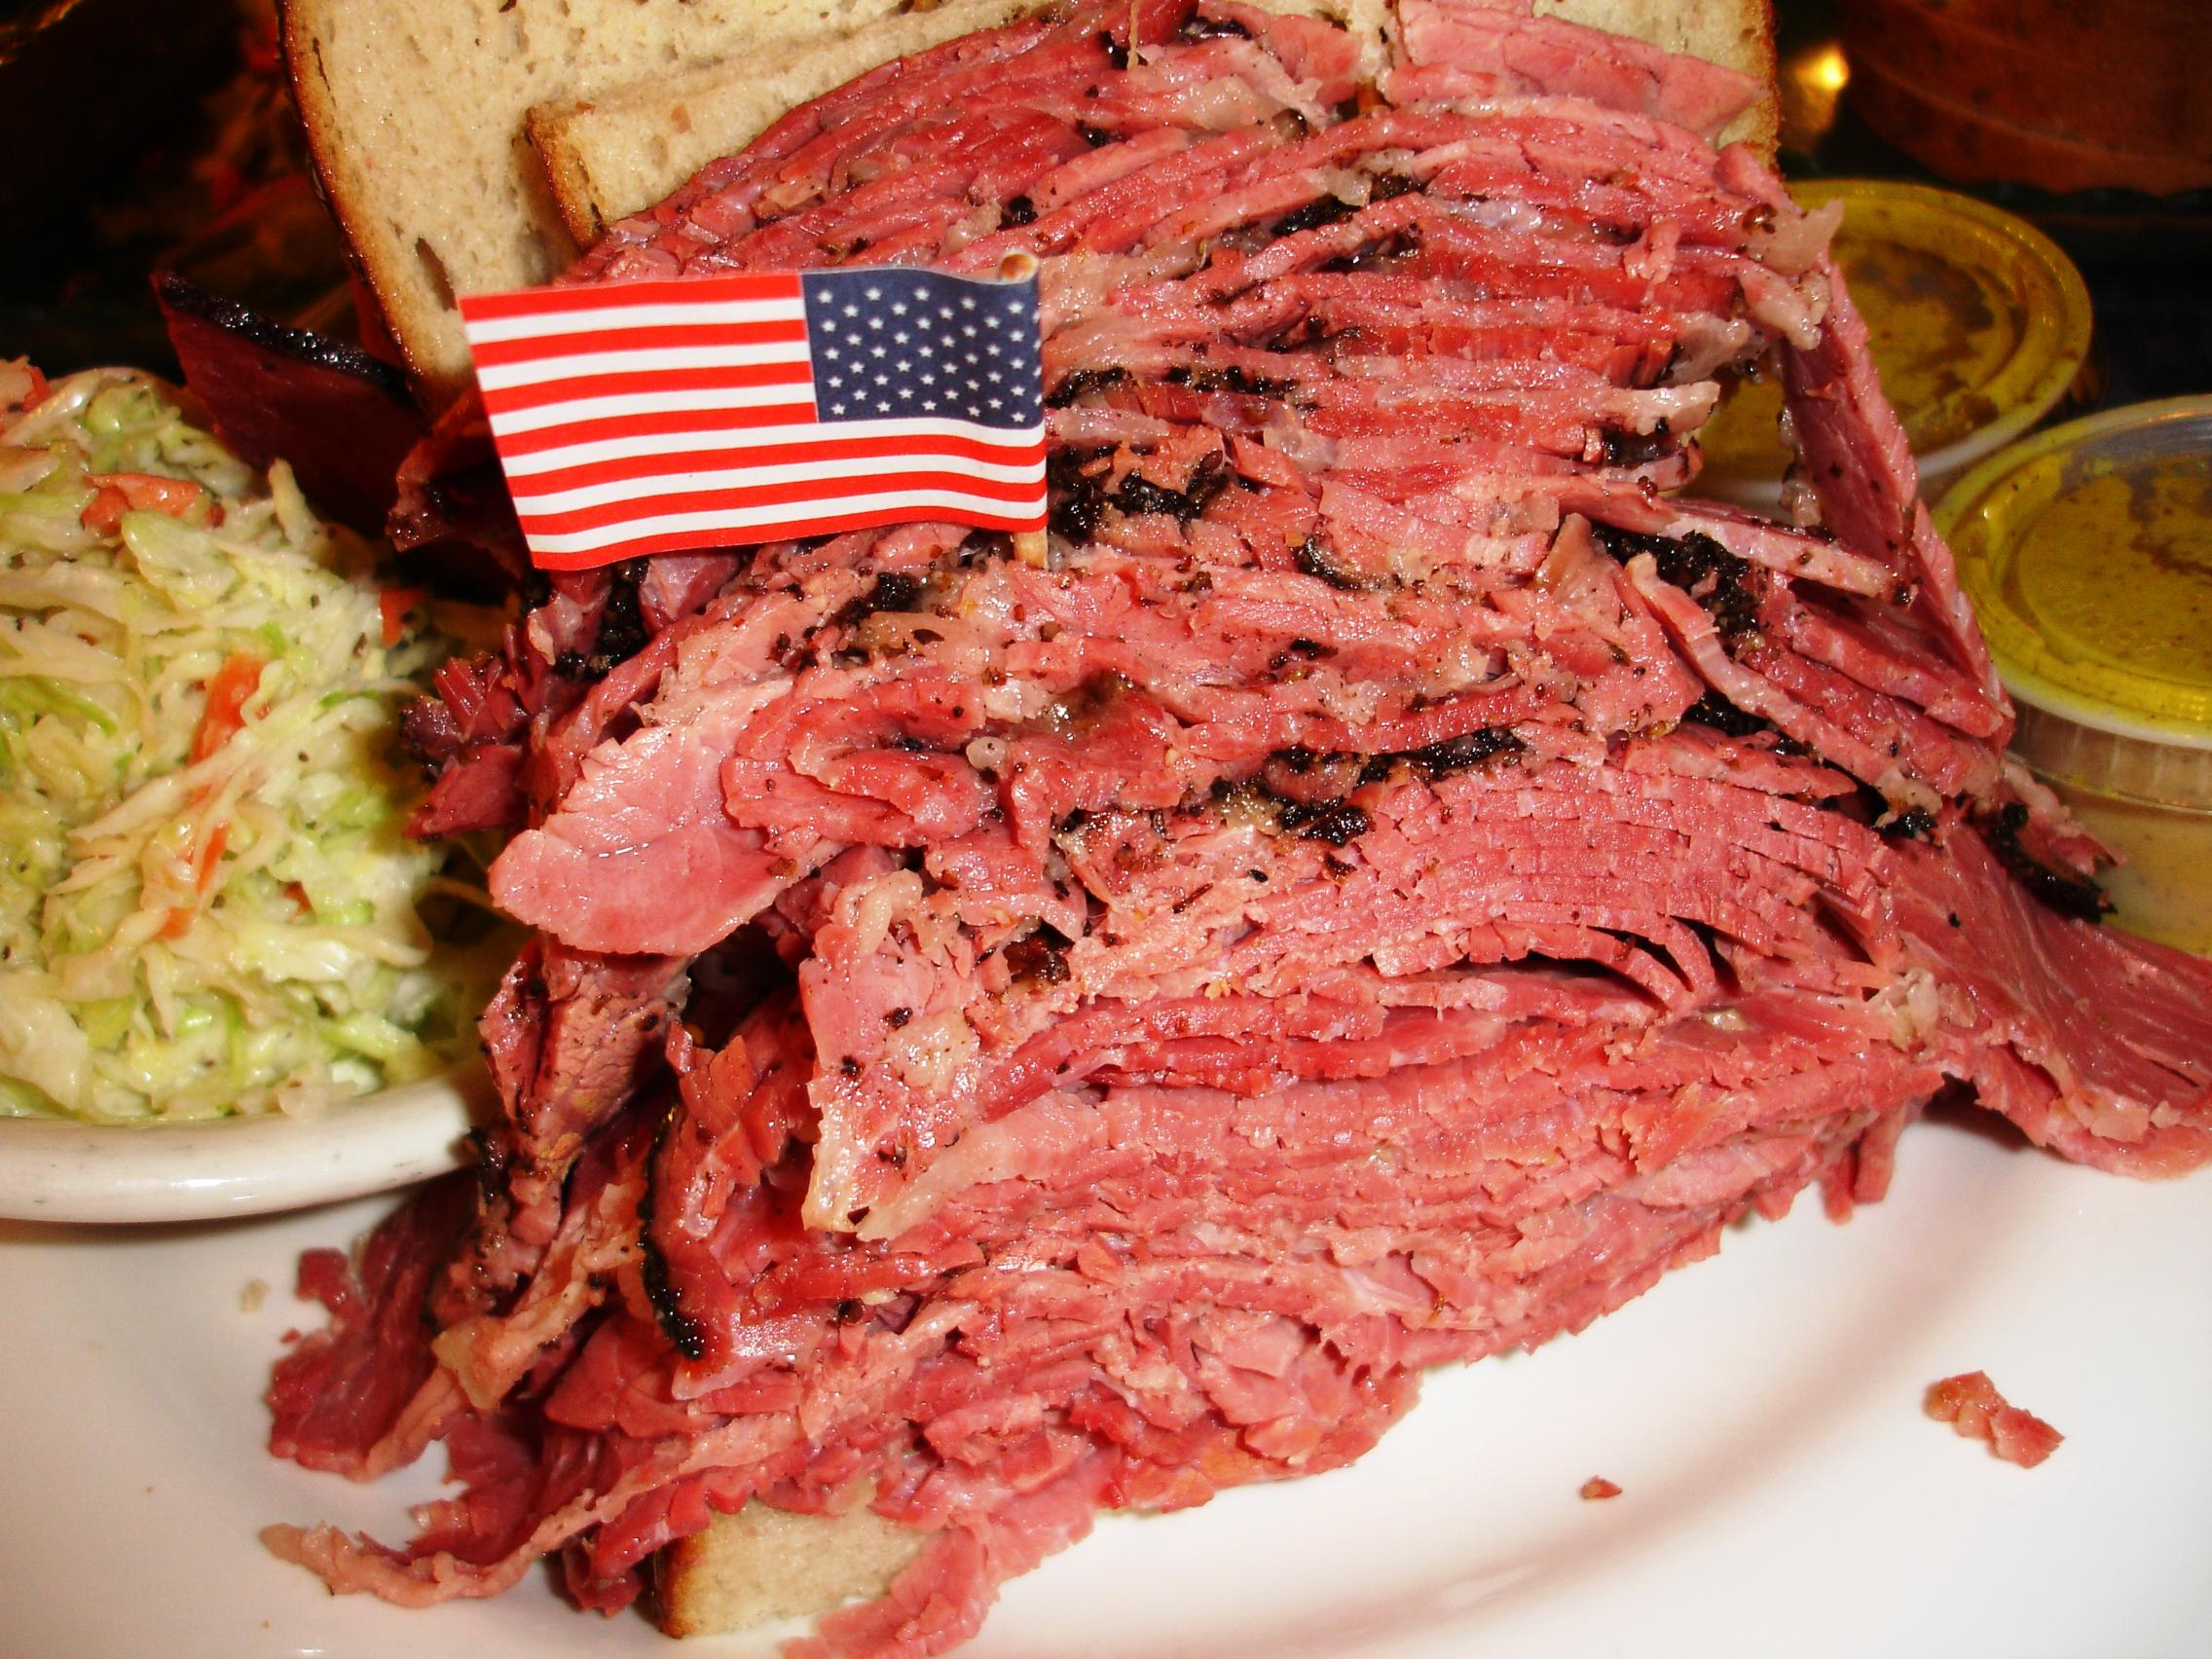 A large (meaning small) corned beef/pastrami combo.